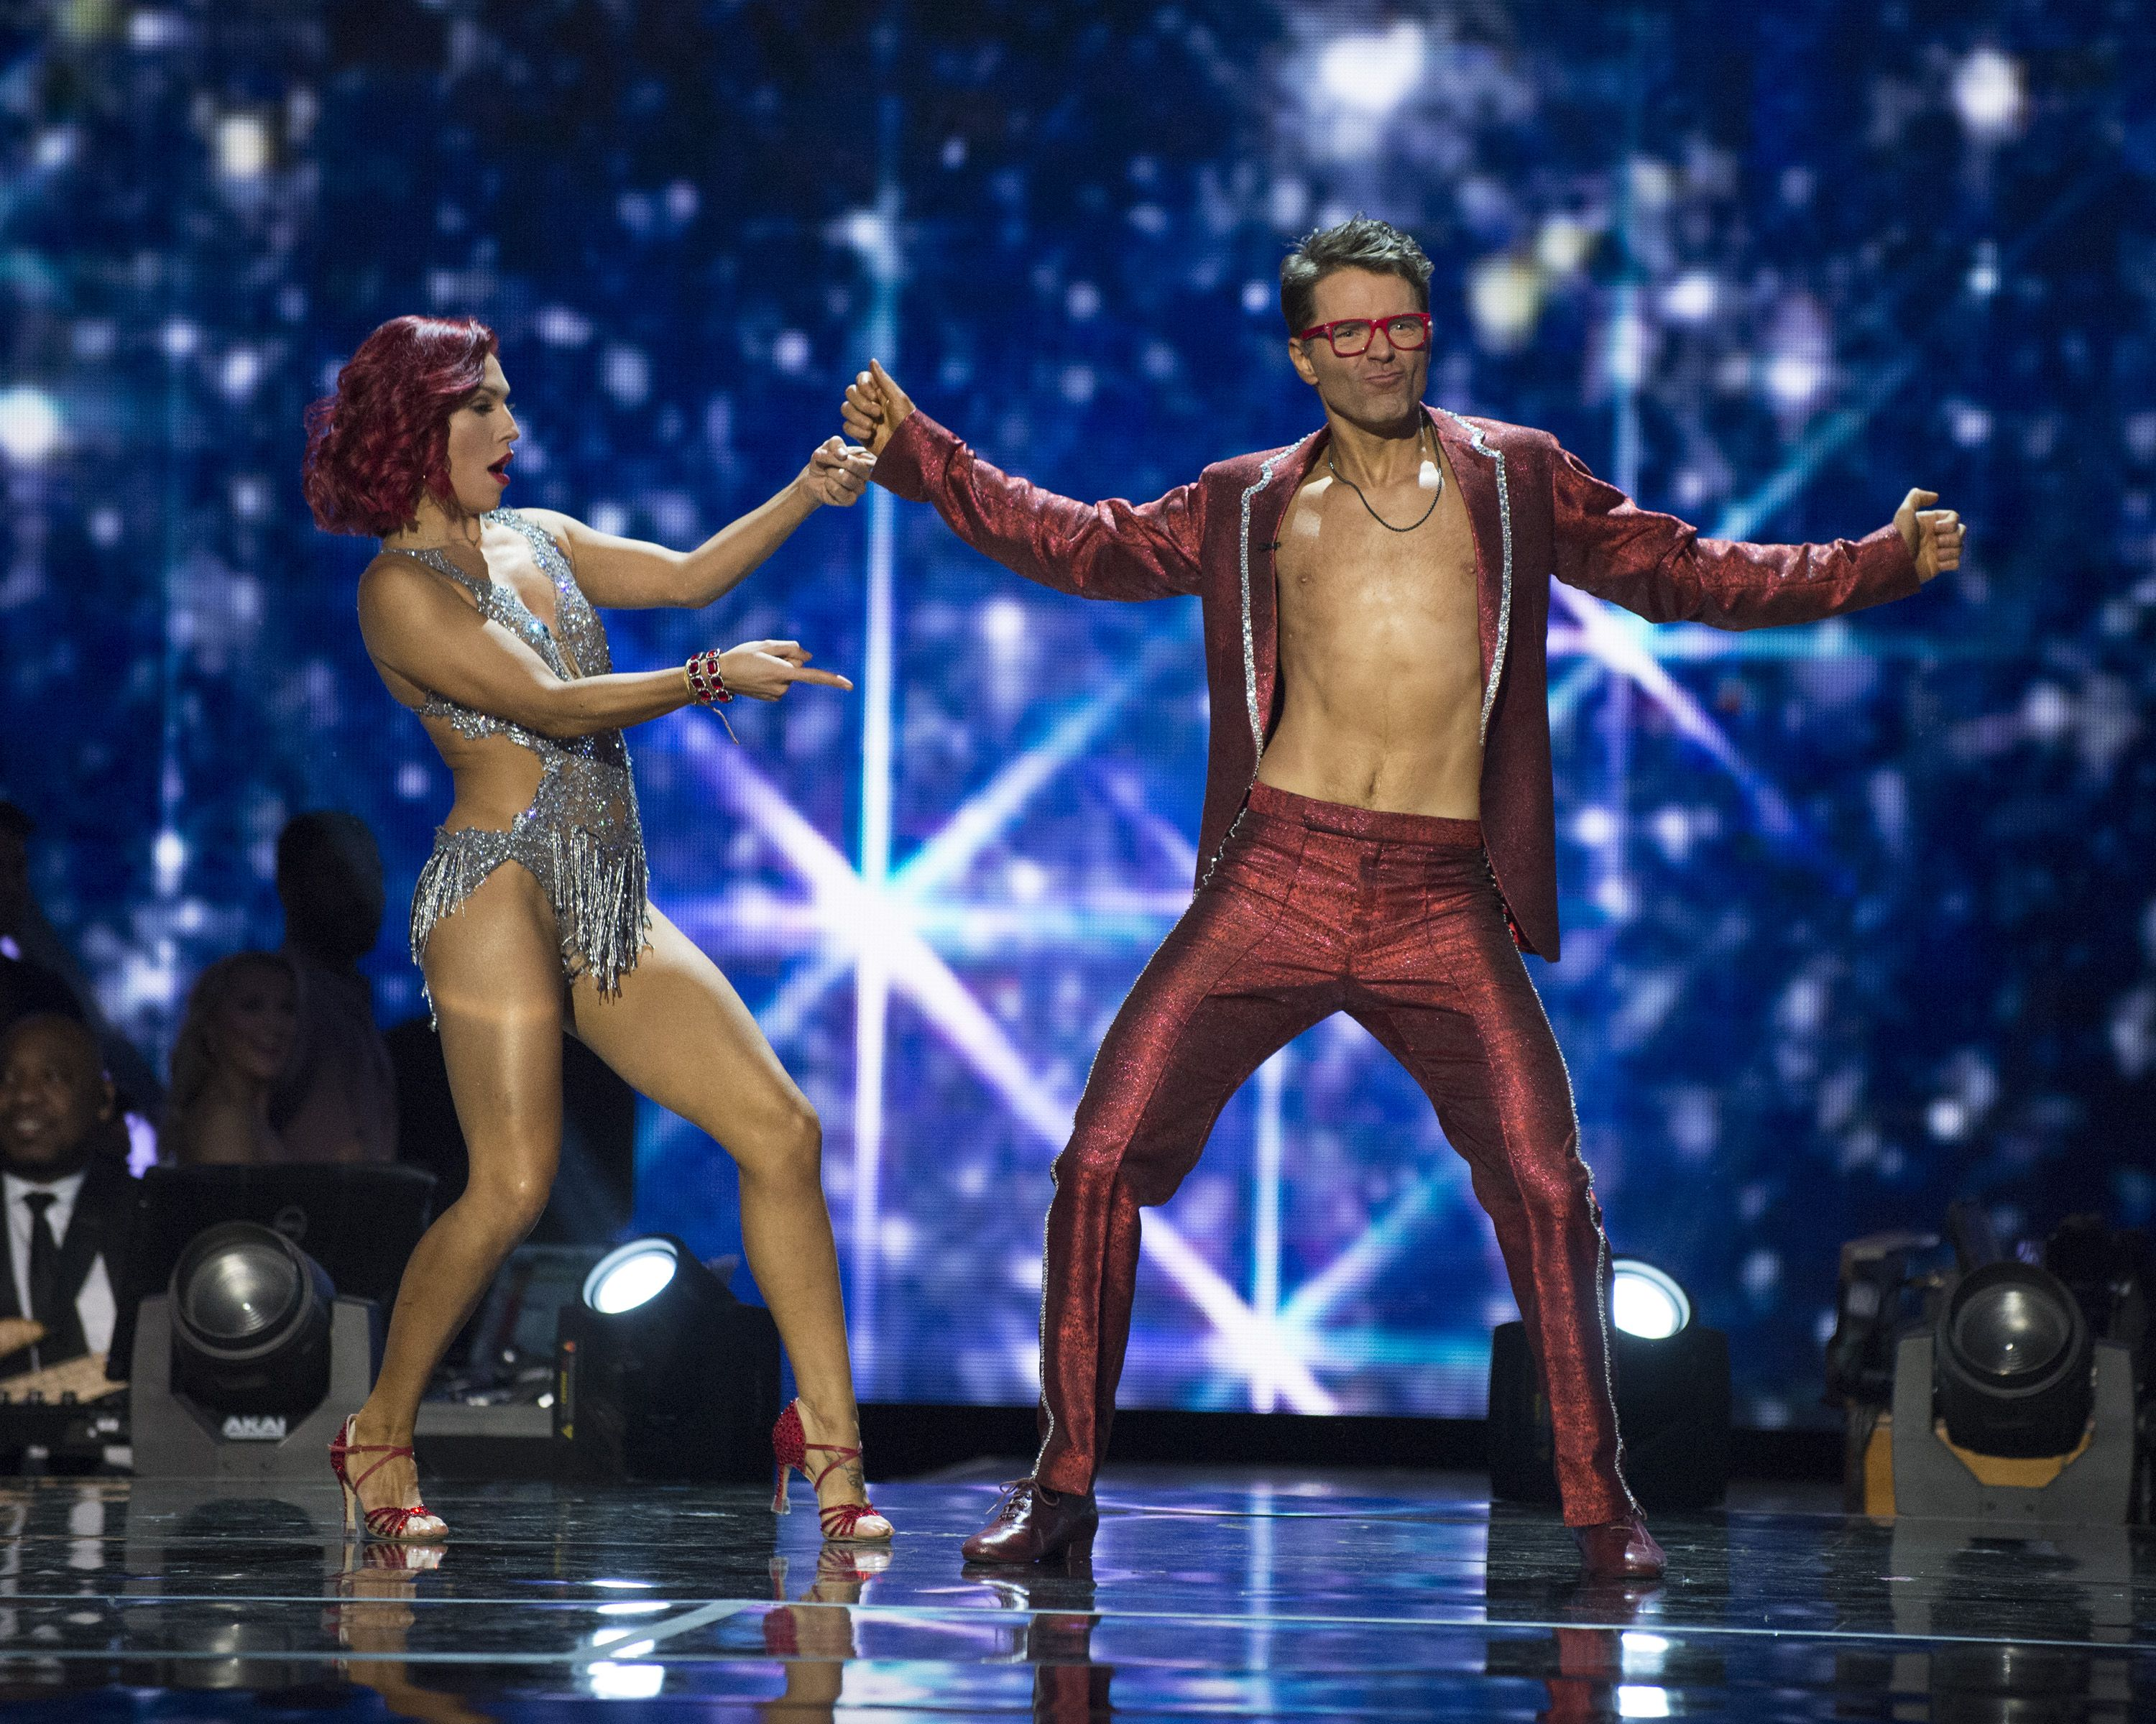 the dancing with the stars finalists have gotten so much better